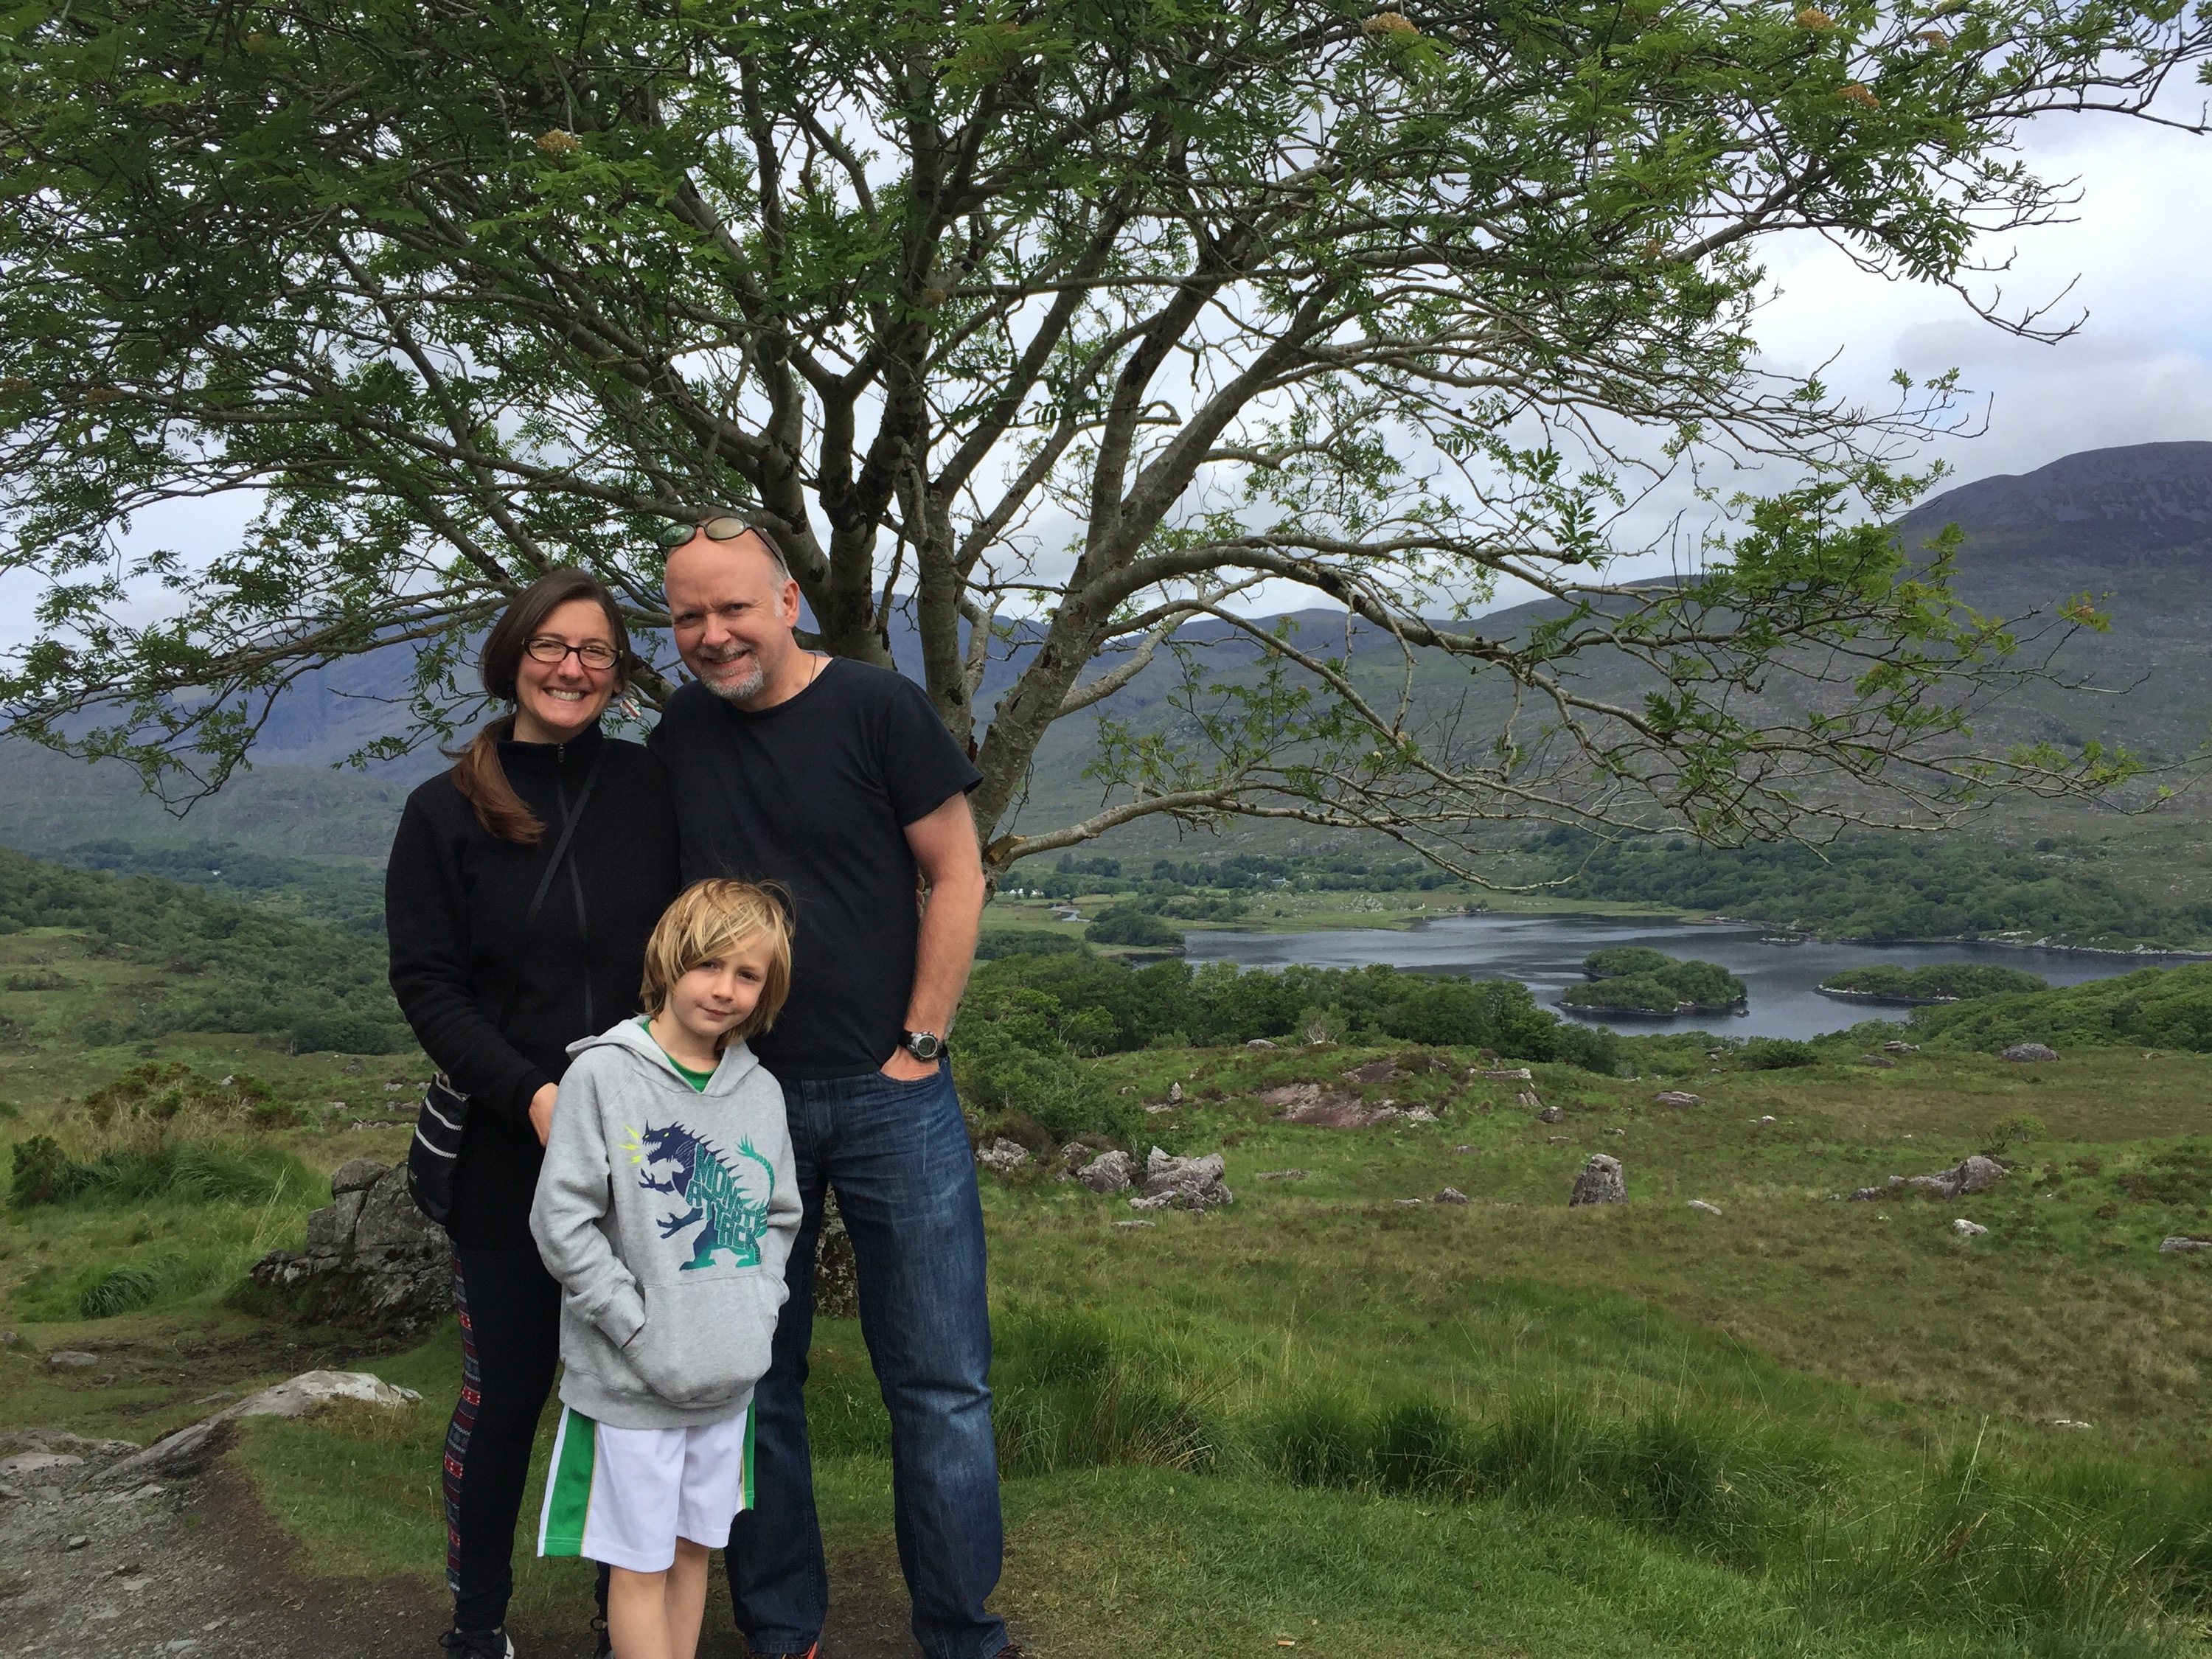 10 Reasons Ireland Rules For Family Vacations